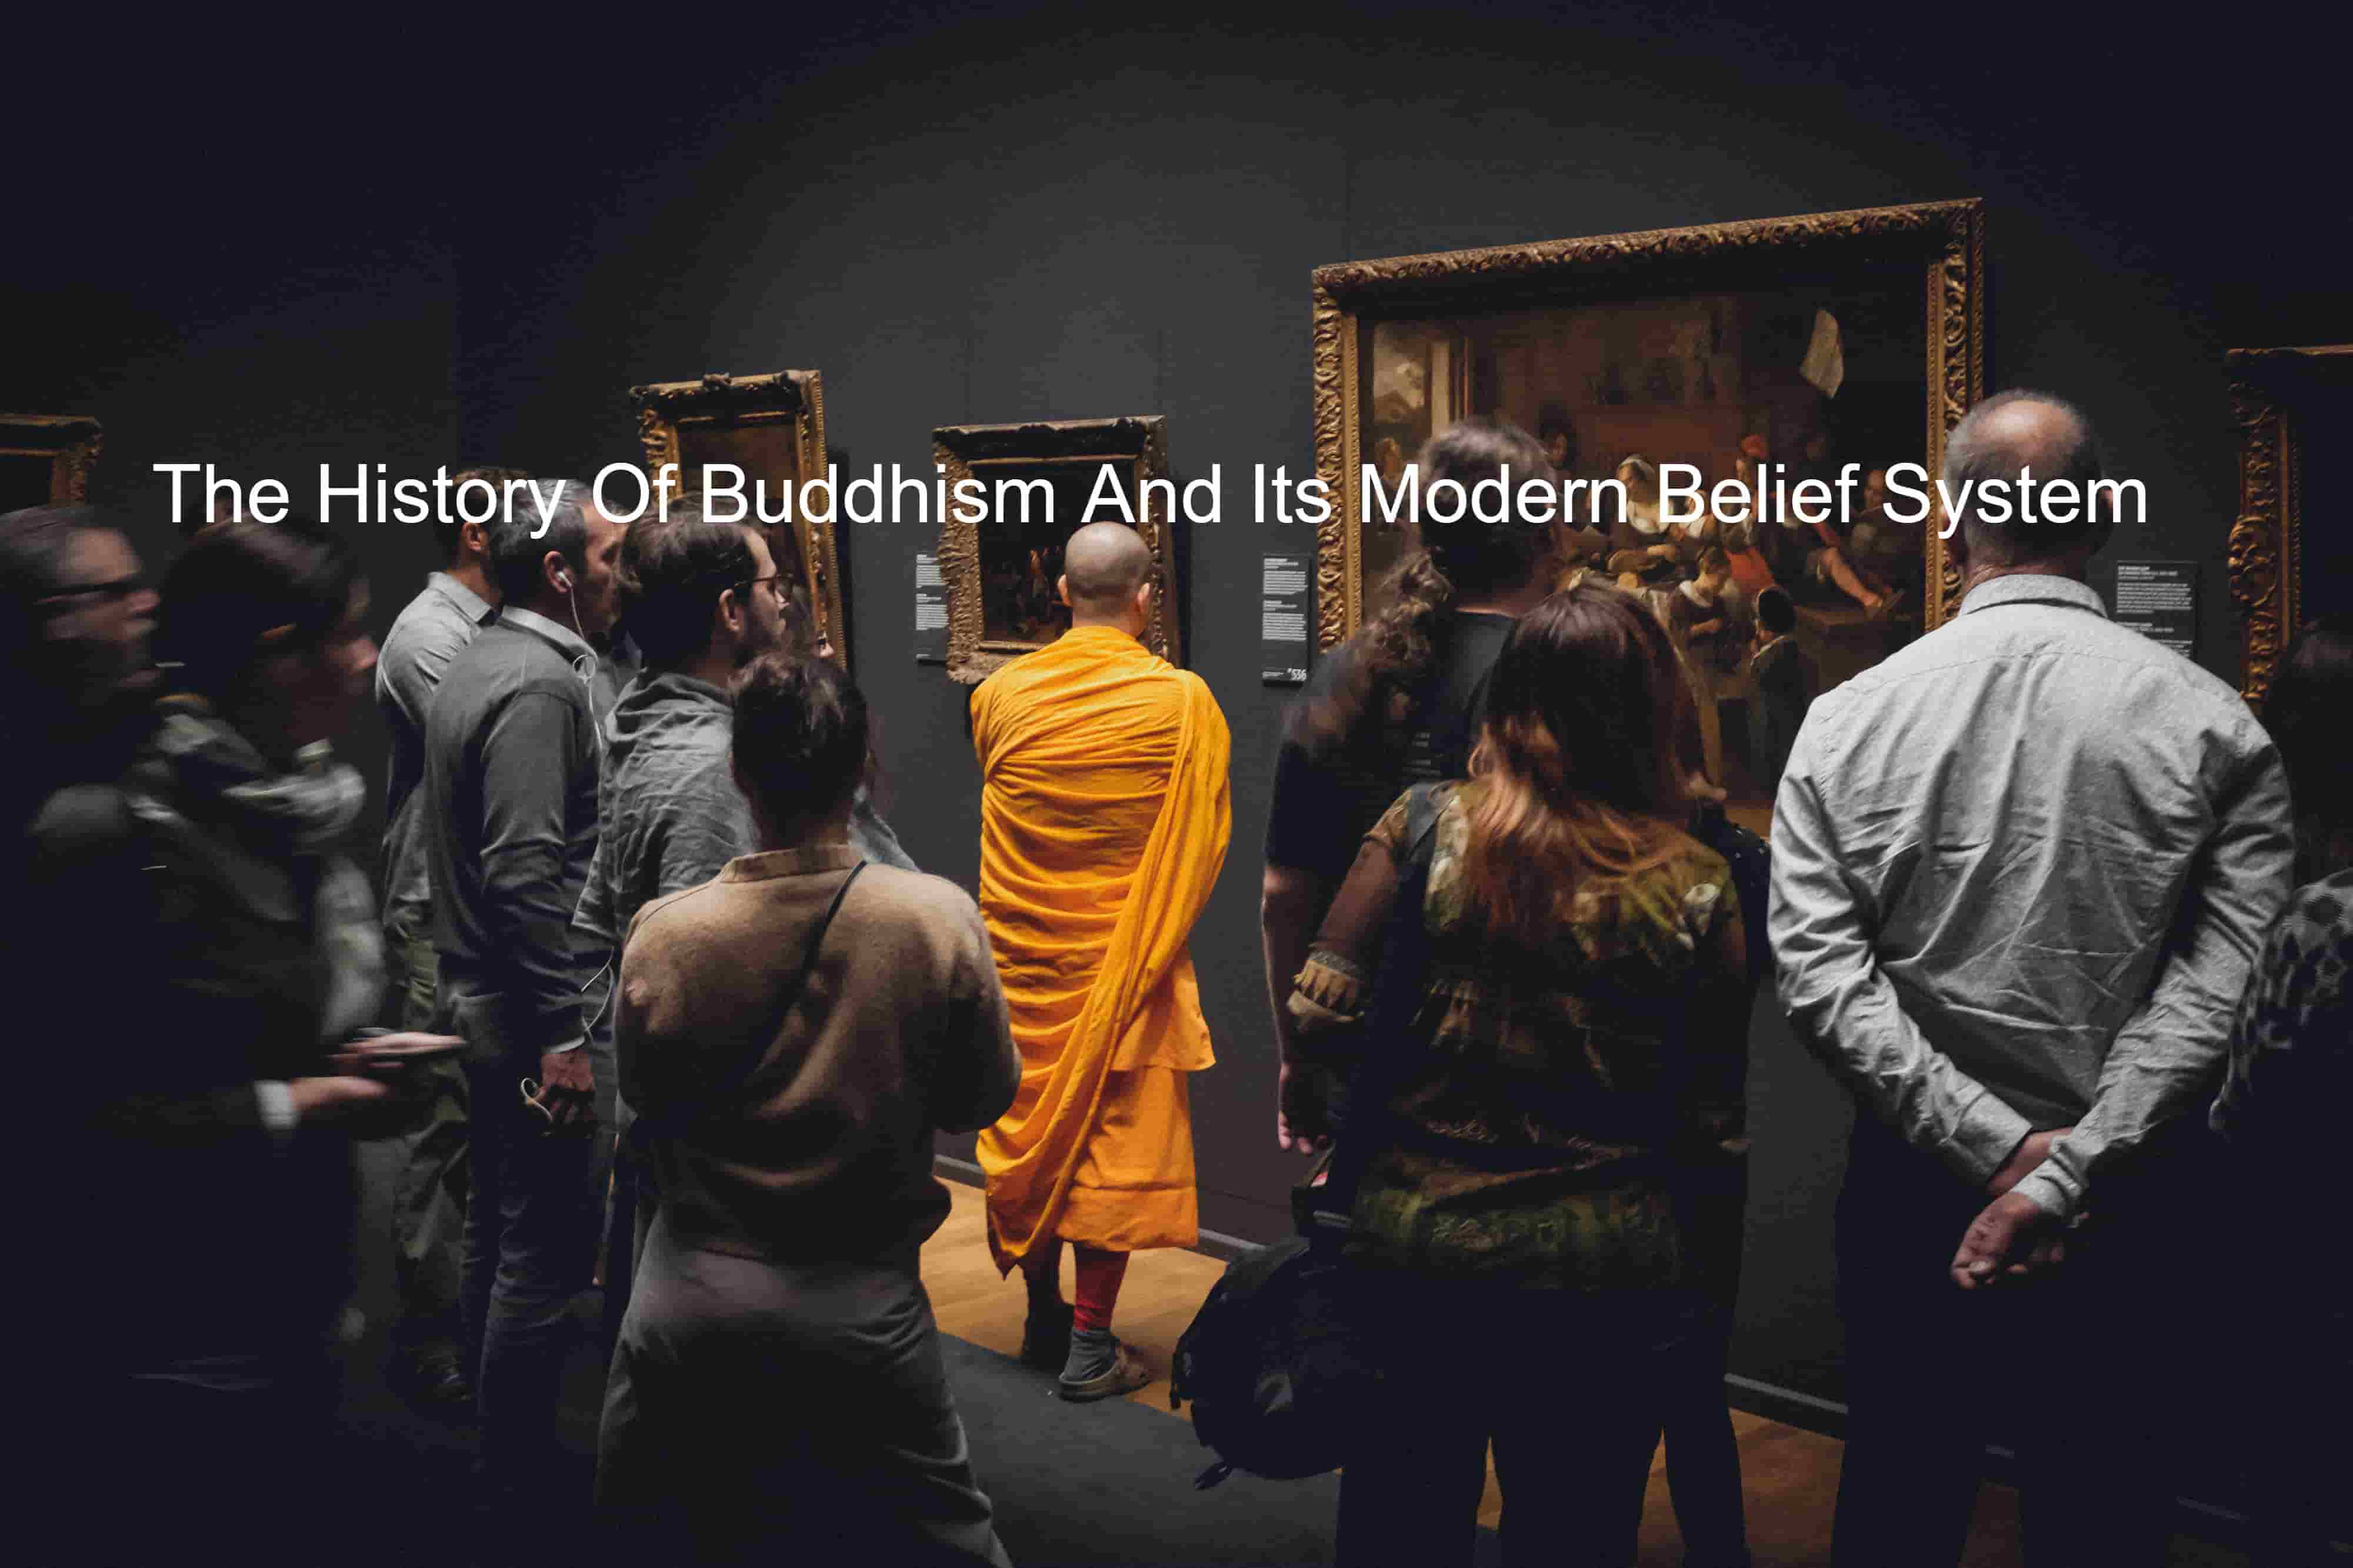 The History Of Buddhism And Its Modern Belief System